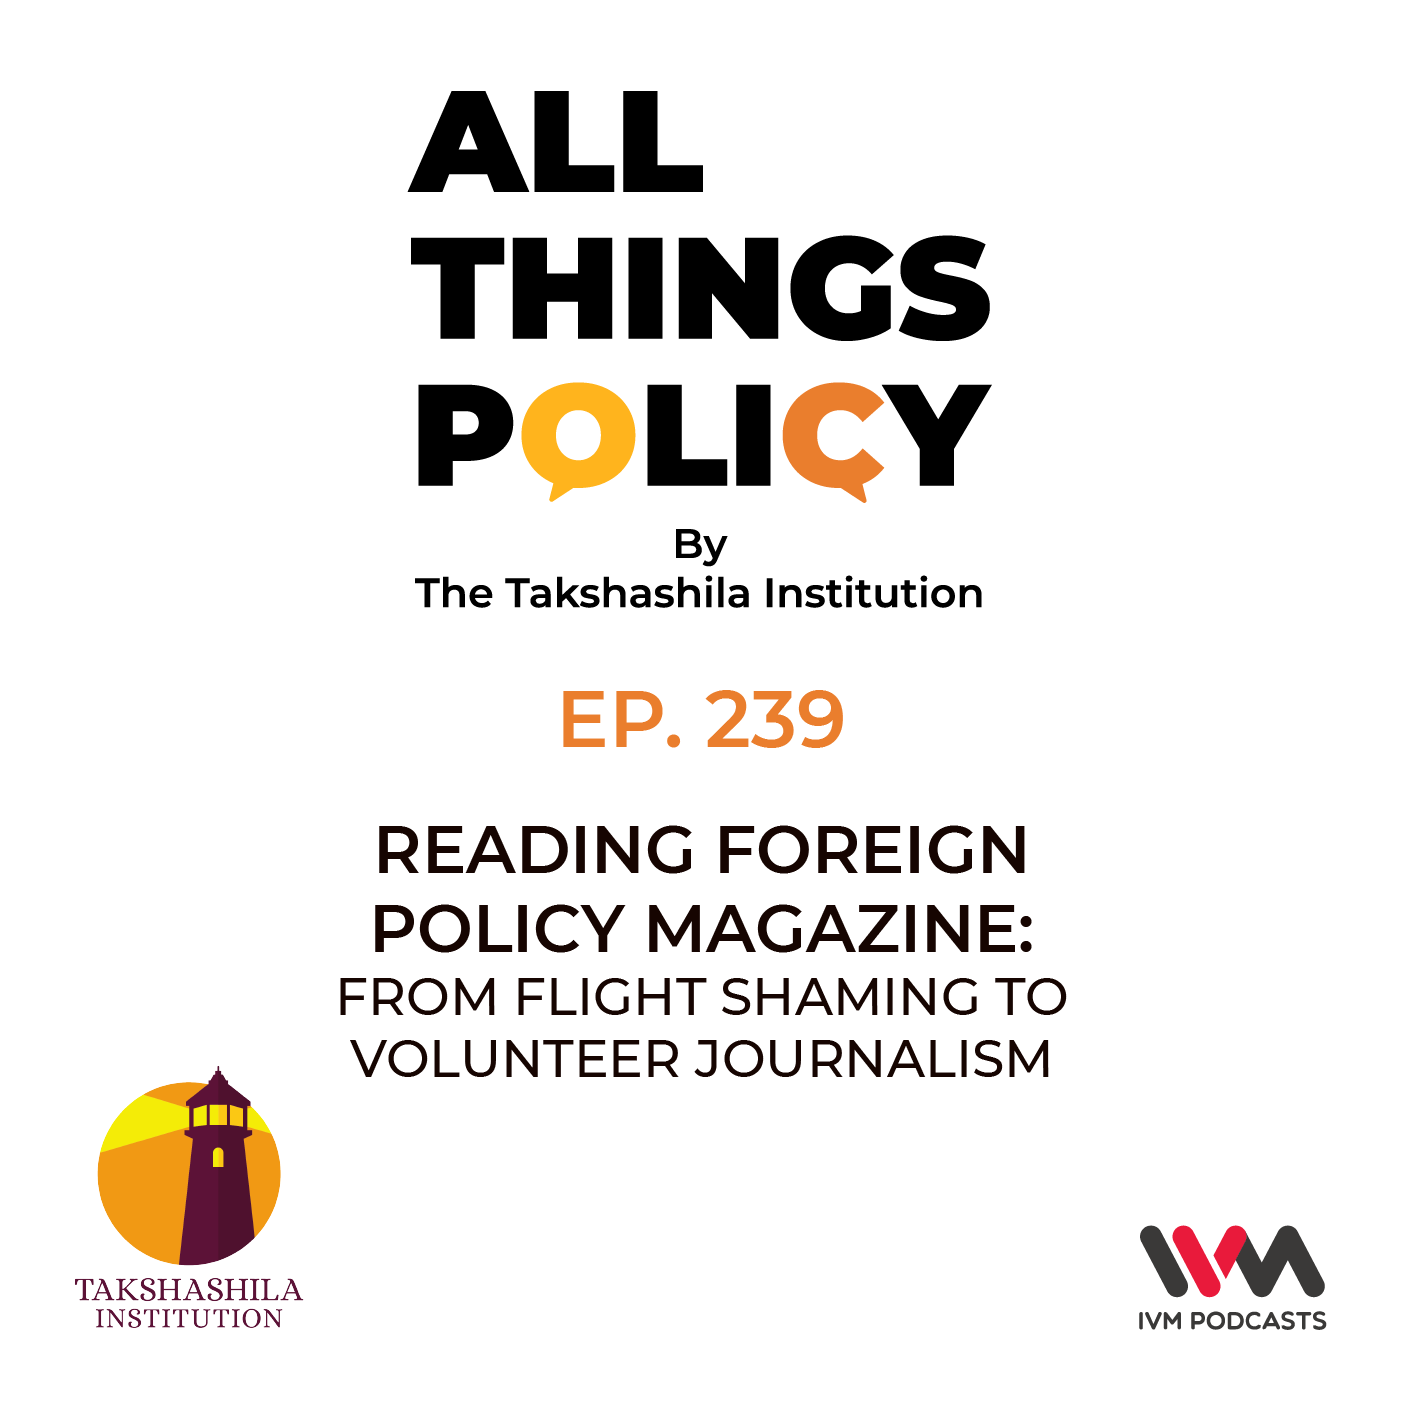 Ep. 239: Reading Foreign Policy Magazine: From Flight Shaming to Volunteer Journalism